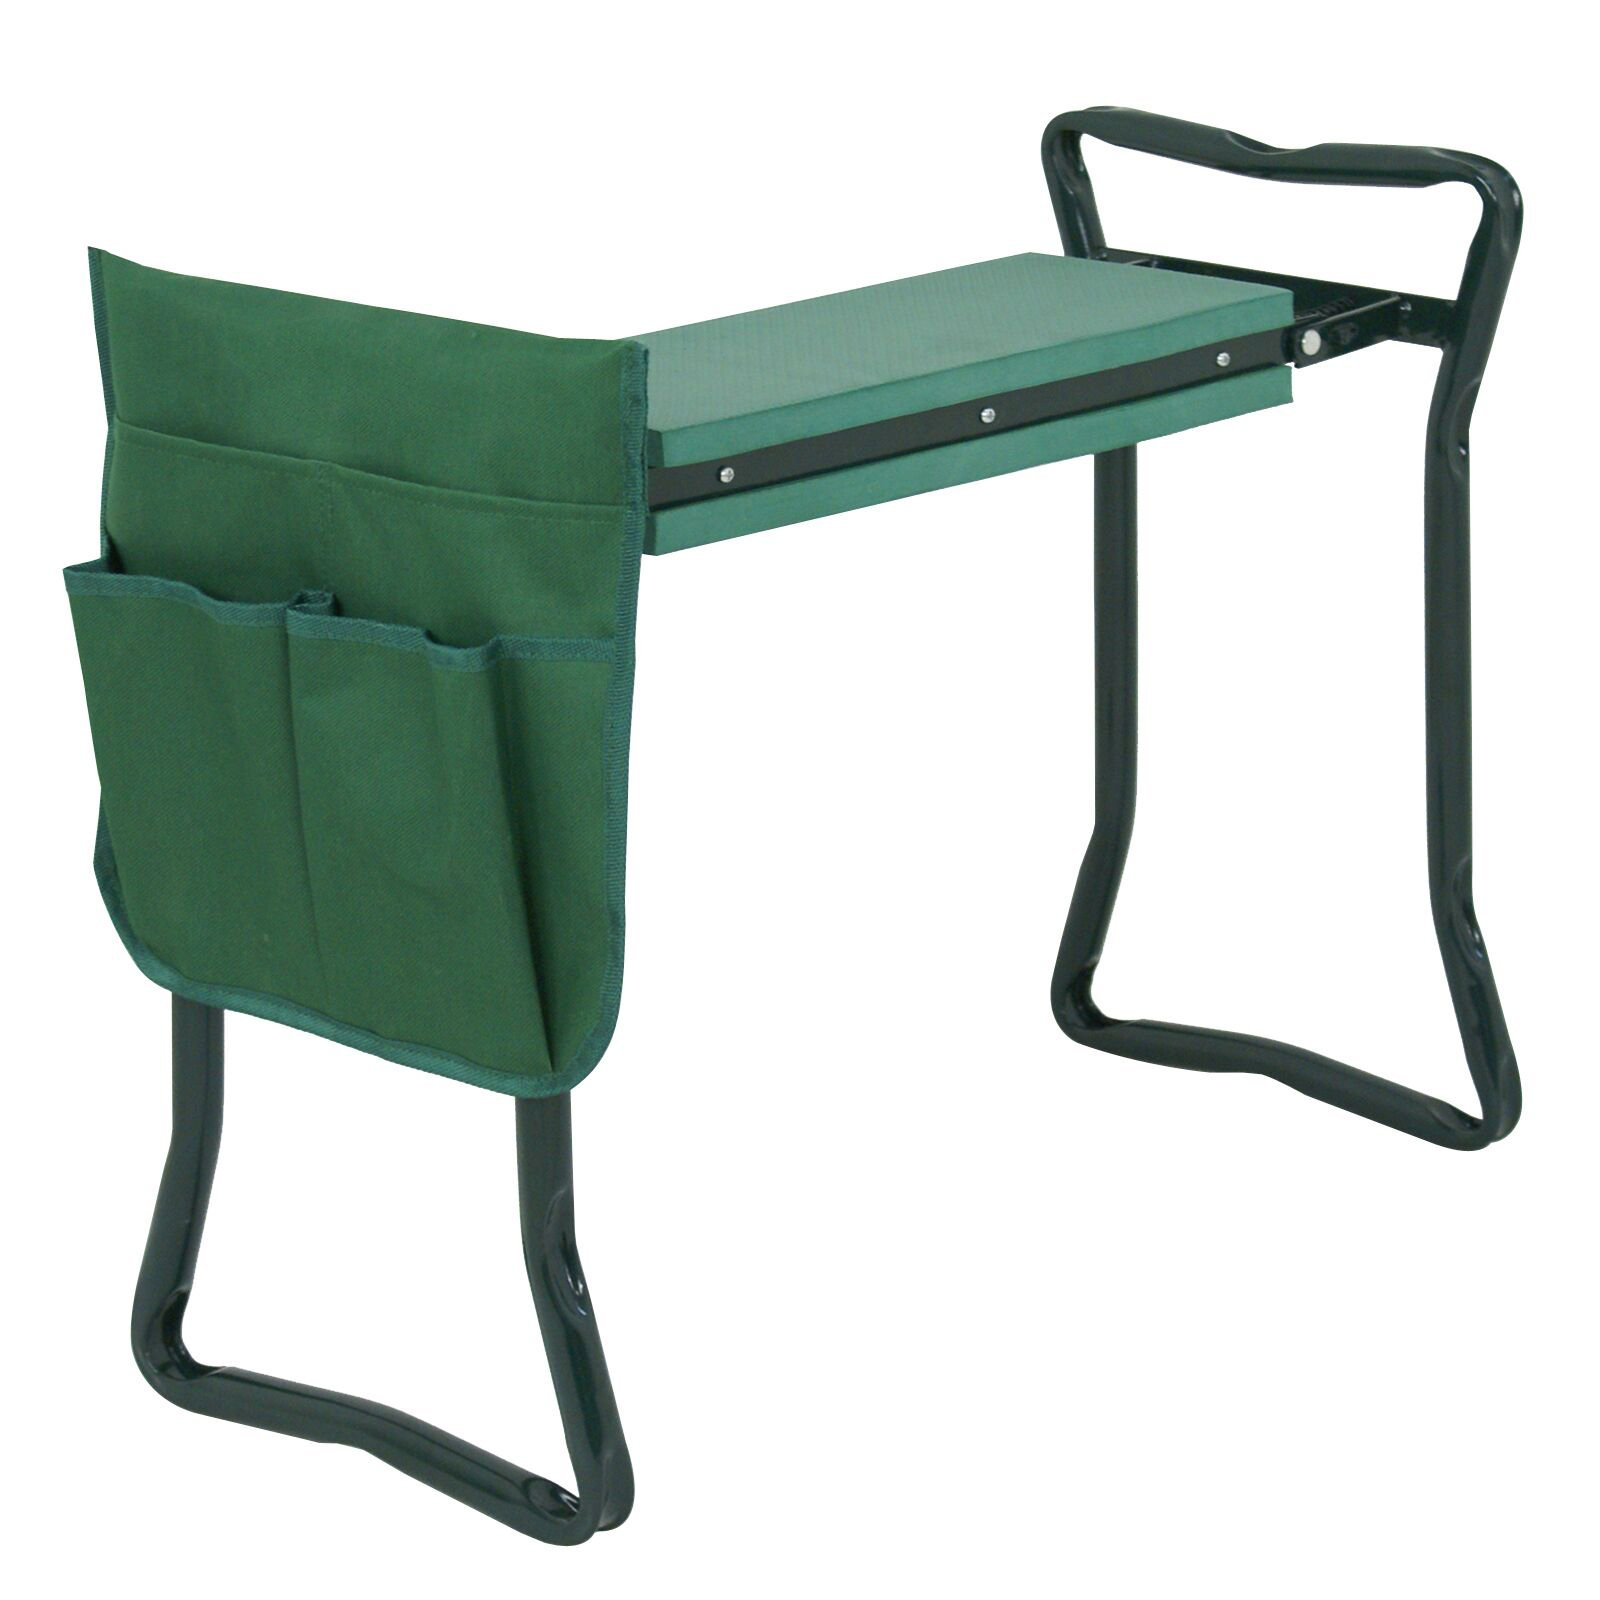 ZENY Folding Garden Kneeler Bench Seat Stool w/Kneeling Pad and Tool Pouch (Green)